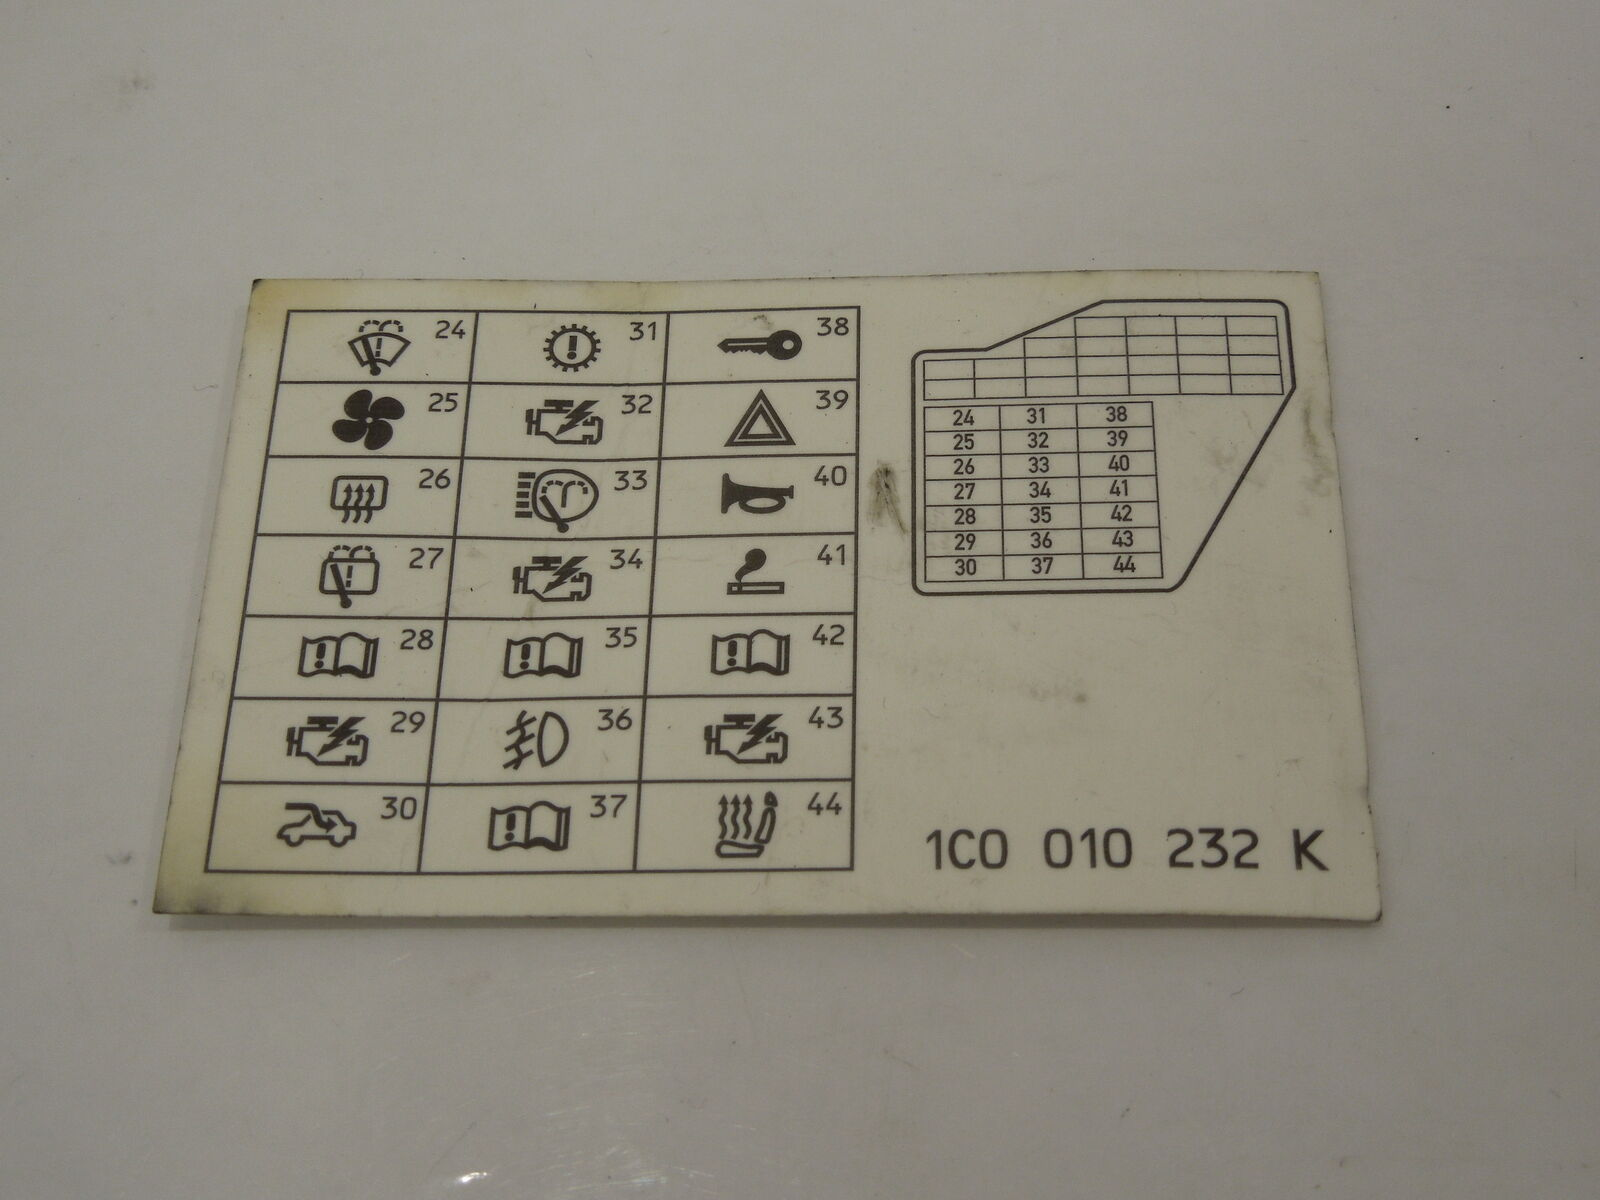 Vw Beetle 9c Fuse Box Card 1c0010232k 599 Picclick Uk Thing 1 Of 1only Available